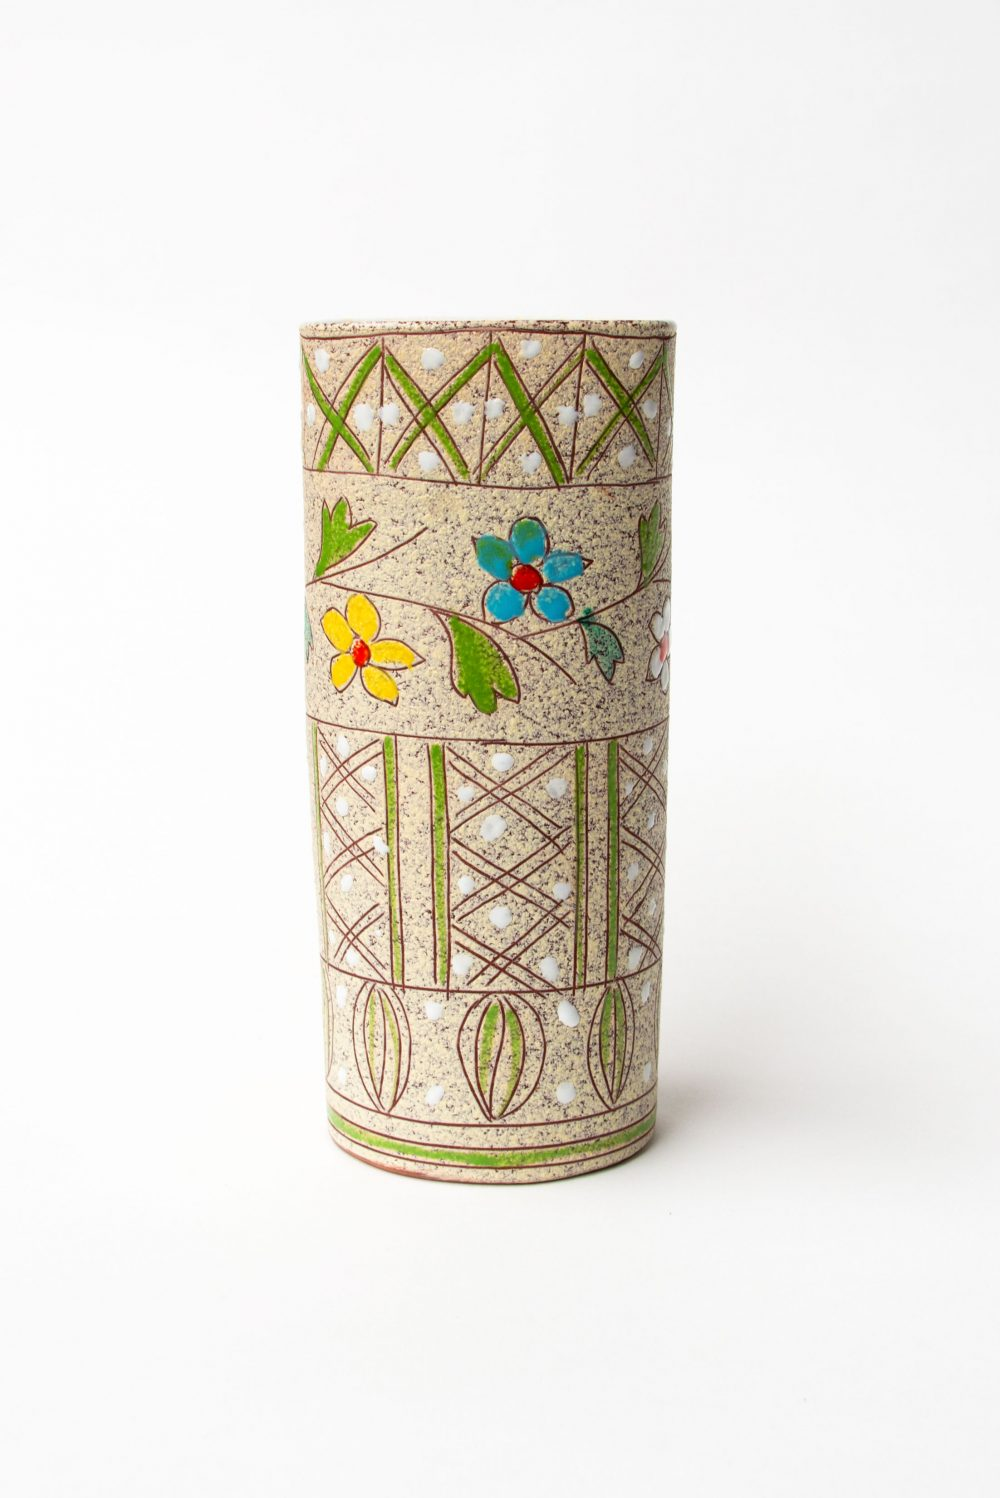 Fratelli Fanciullacci Tapering Vase, Italy 1950s